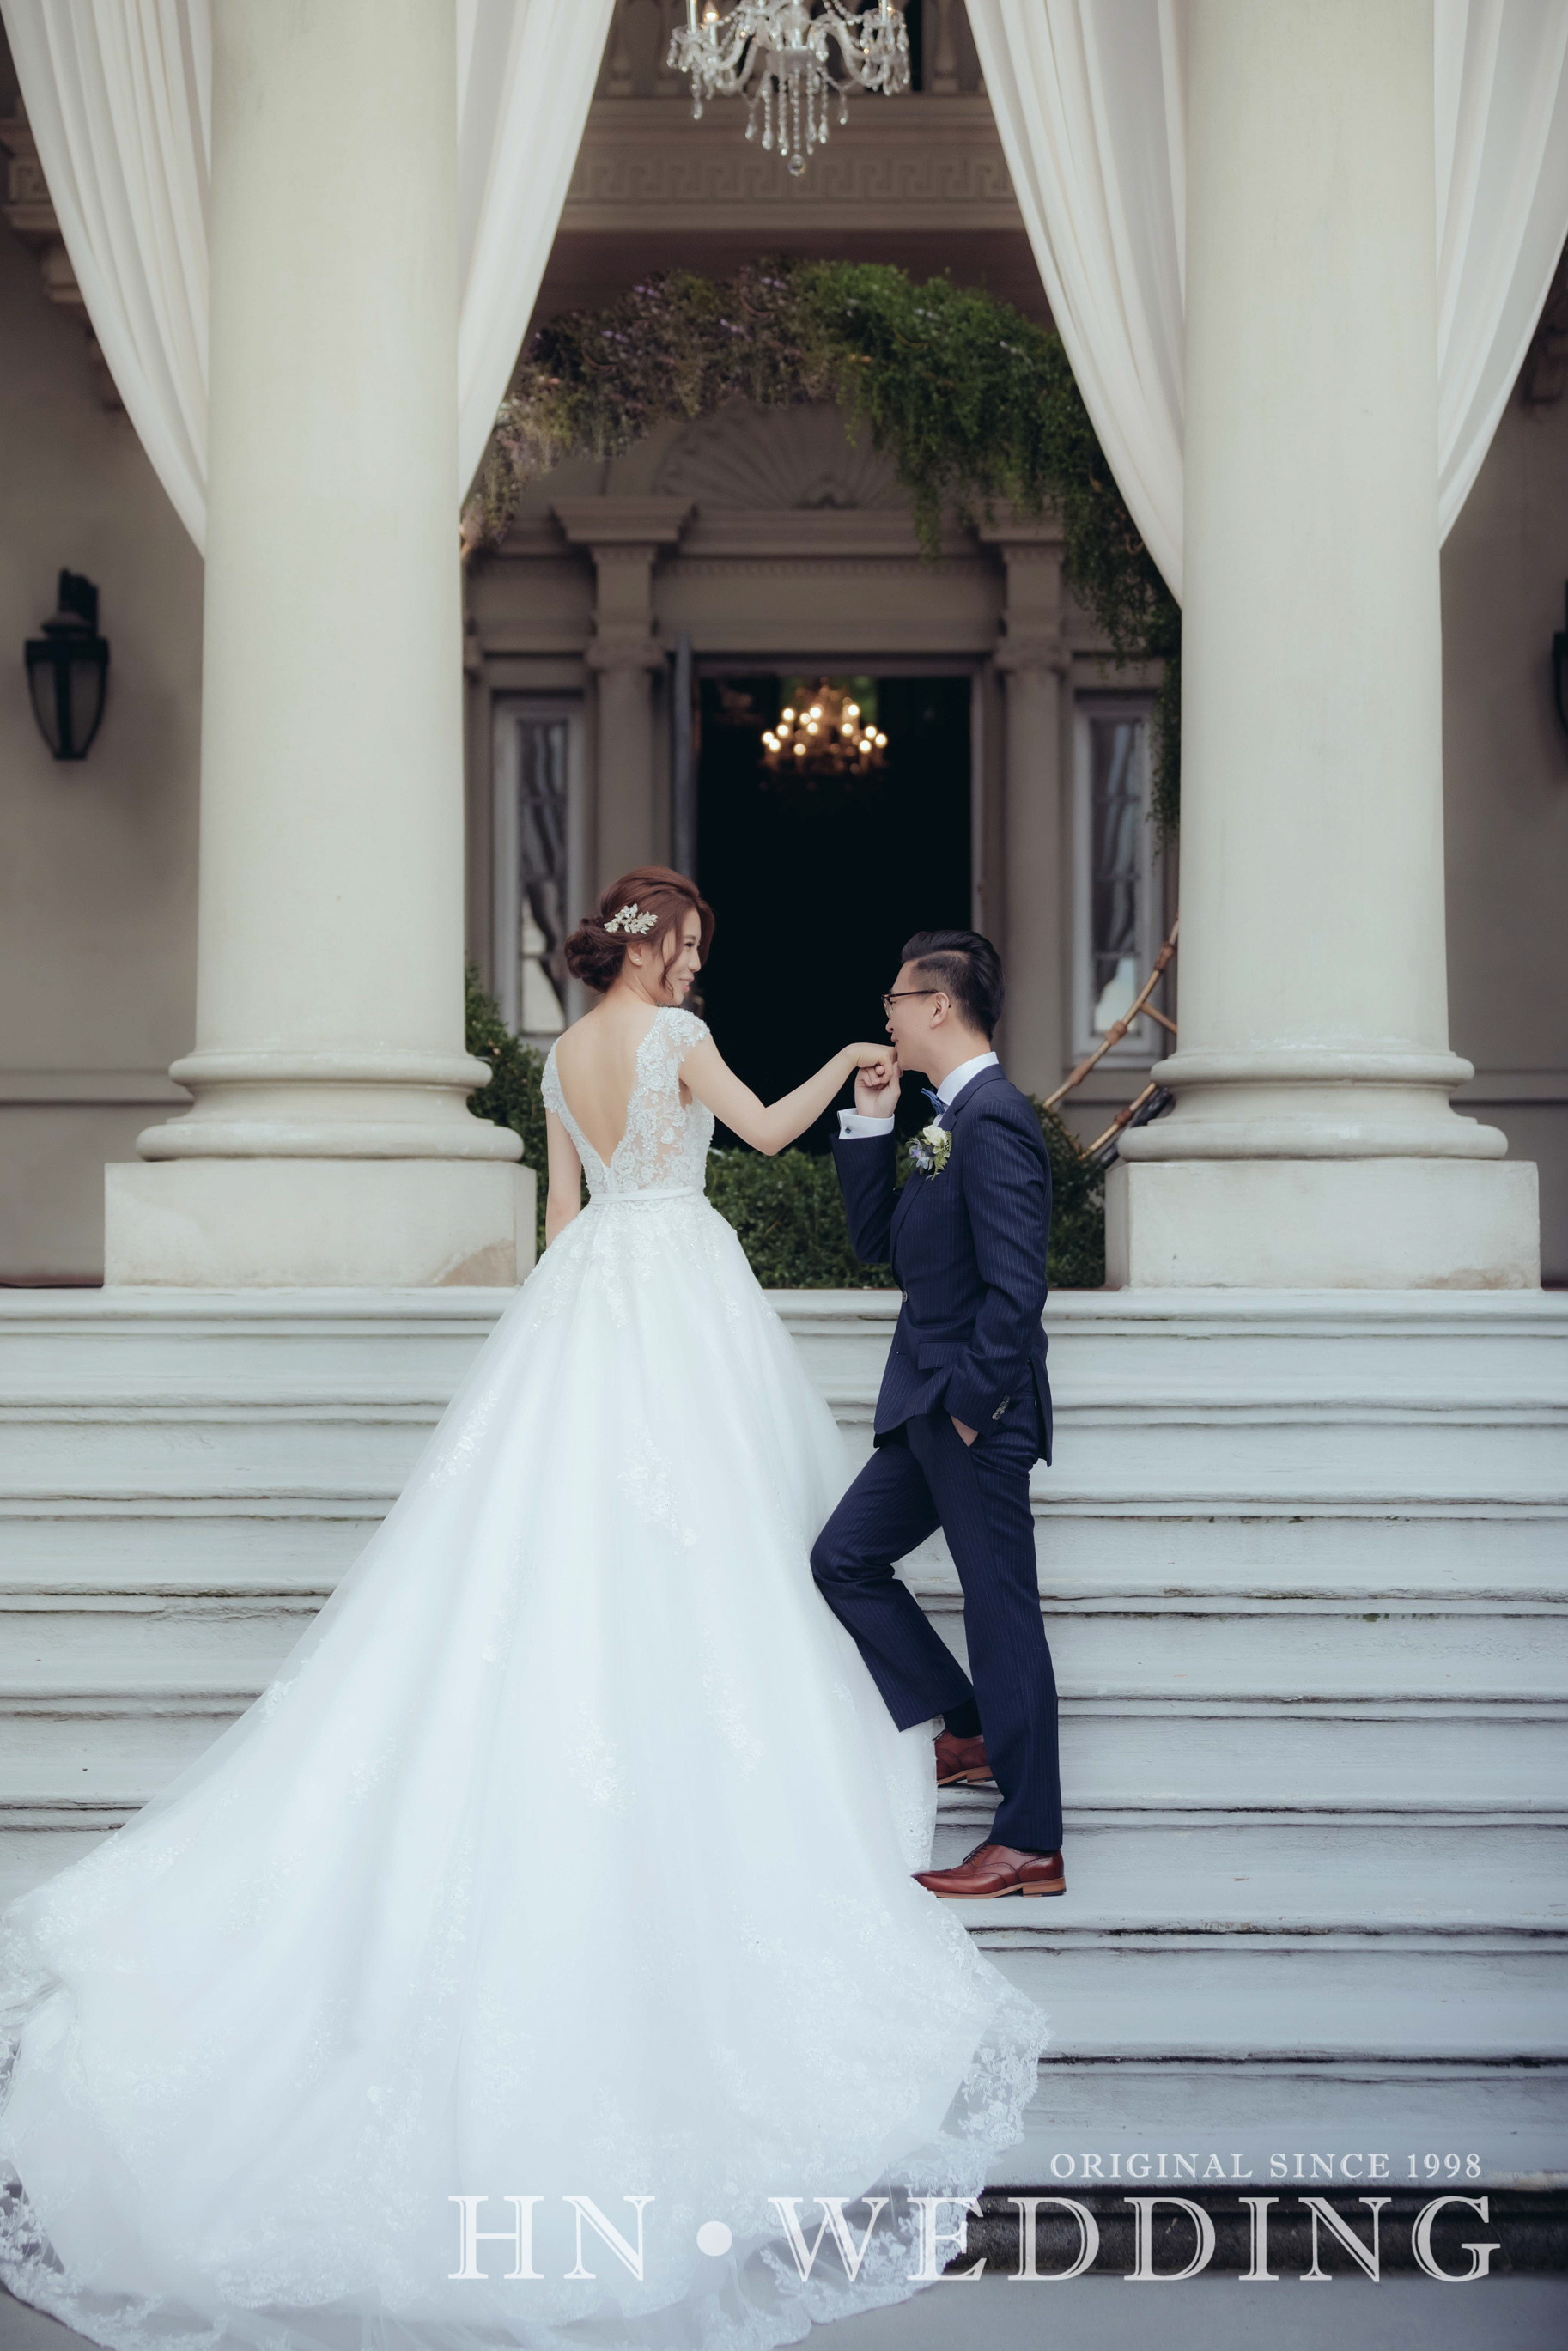 hnweddingweddingday10192018-2-14.jpg